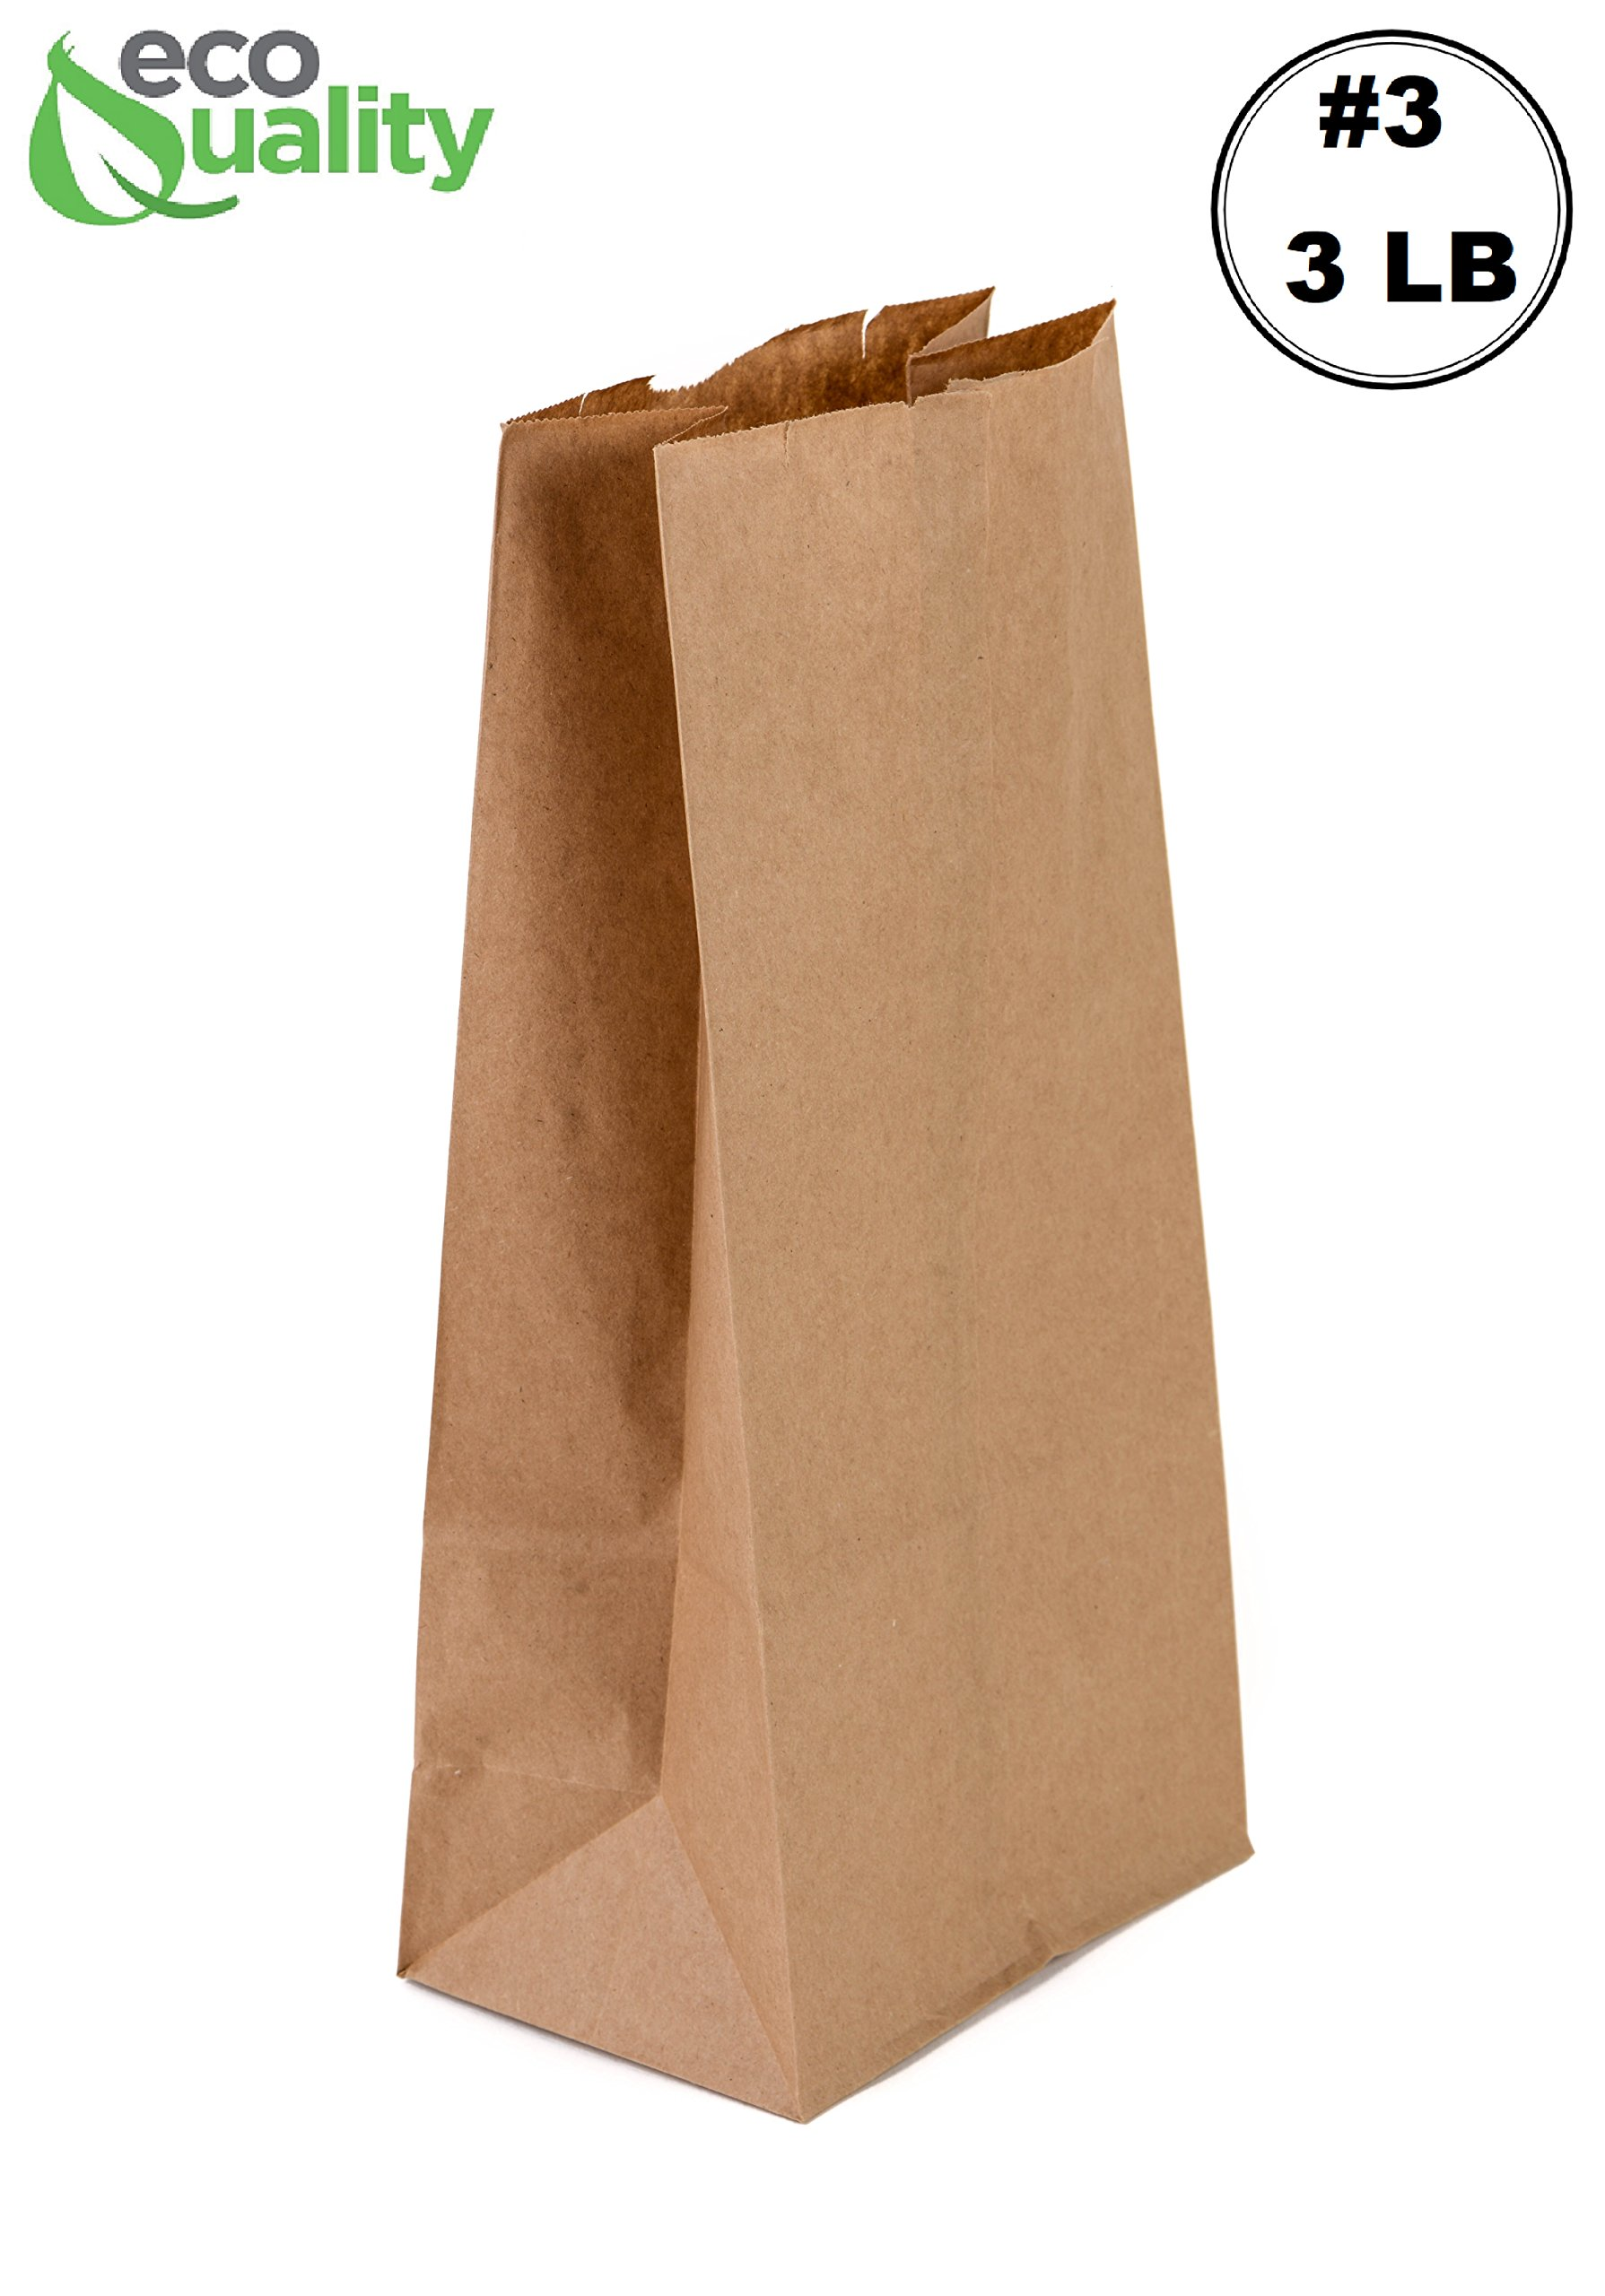 EcoQuality 500 Small Brown Kraft Paper Bag (3 lb) Small - Paper Lunch Bags, Small Snacks, Gift Bags, Grocery, Merchandise, Party Bags (4-3/4'' x 2-15/16'' x 8-9/16) (3 Pound Capacity)